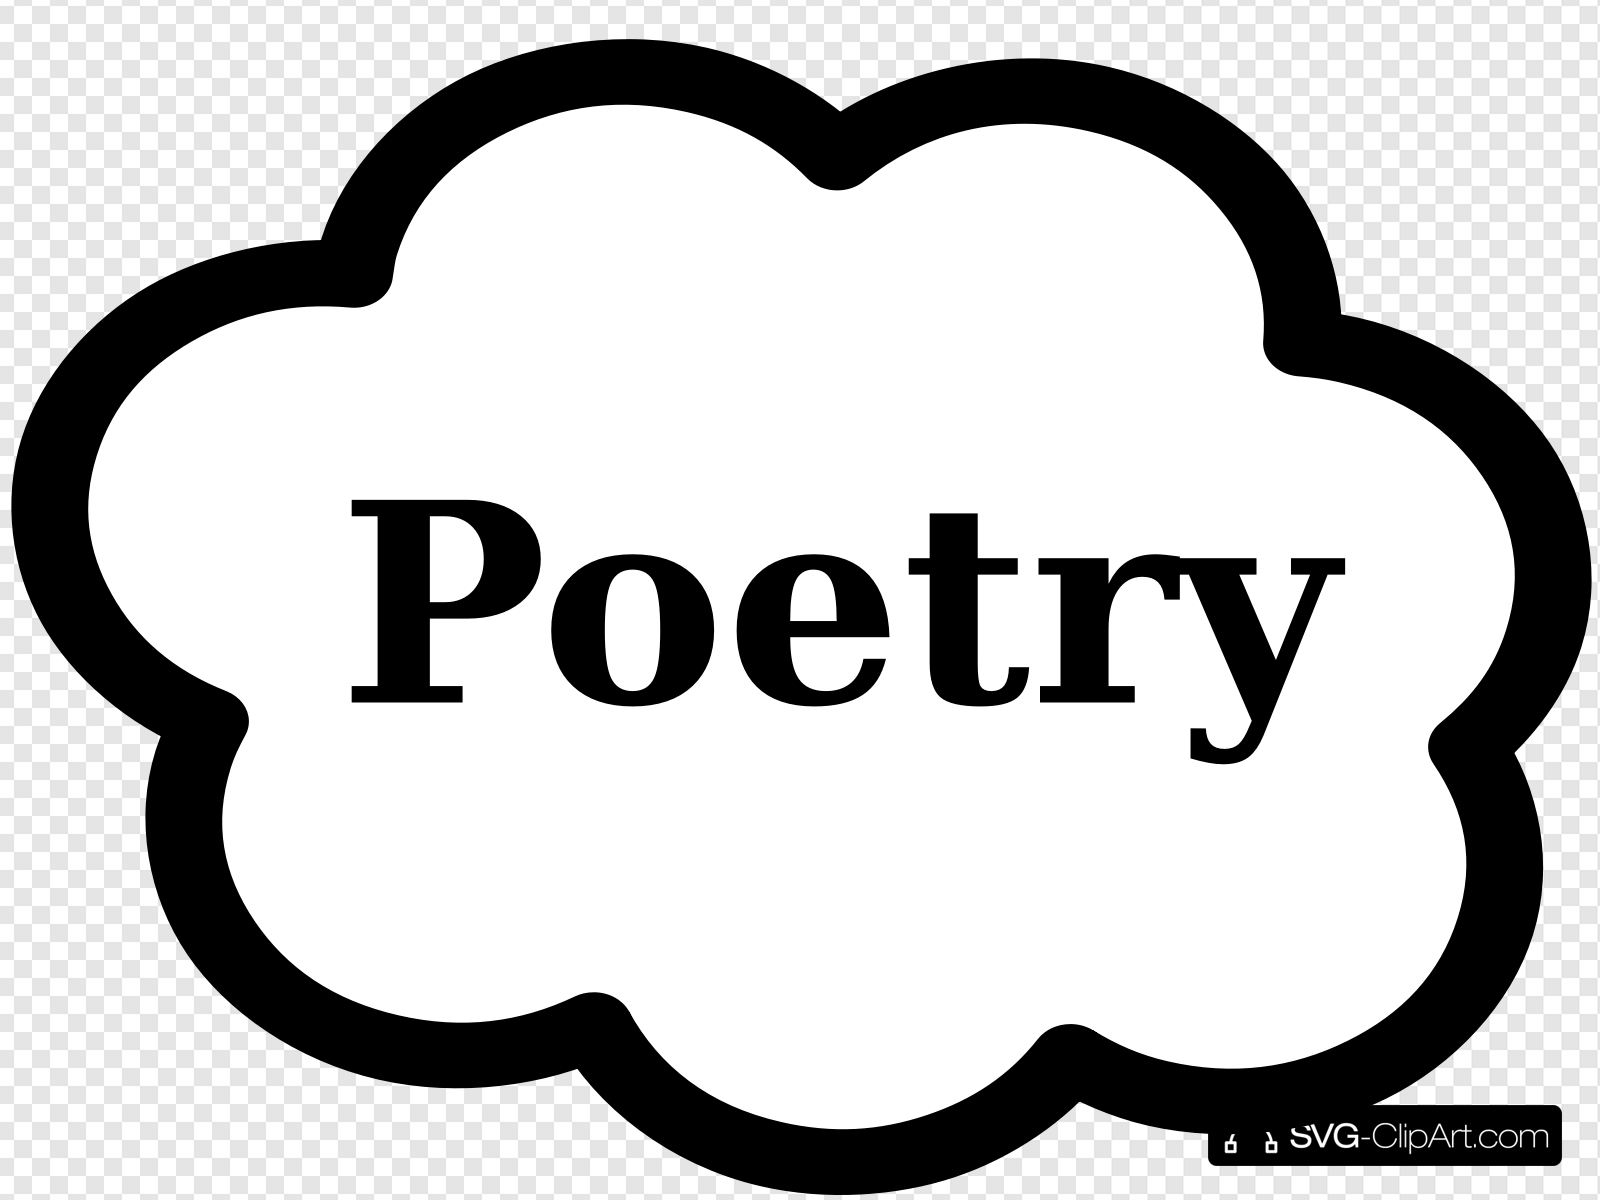 Poetry Book Sign Clip art, Icon and SVG.